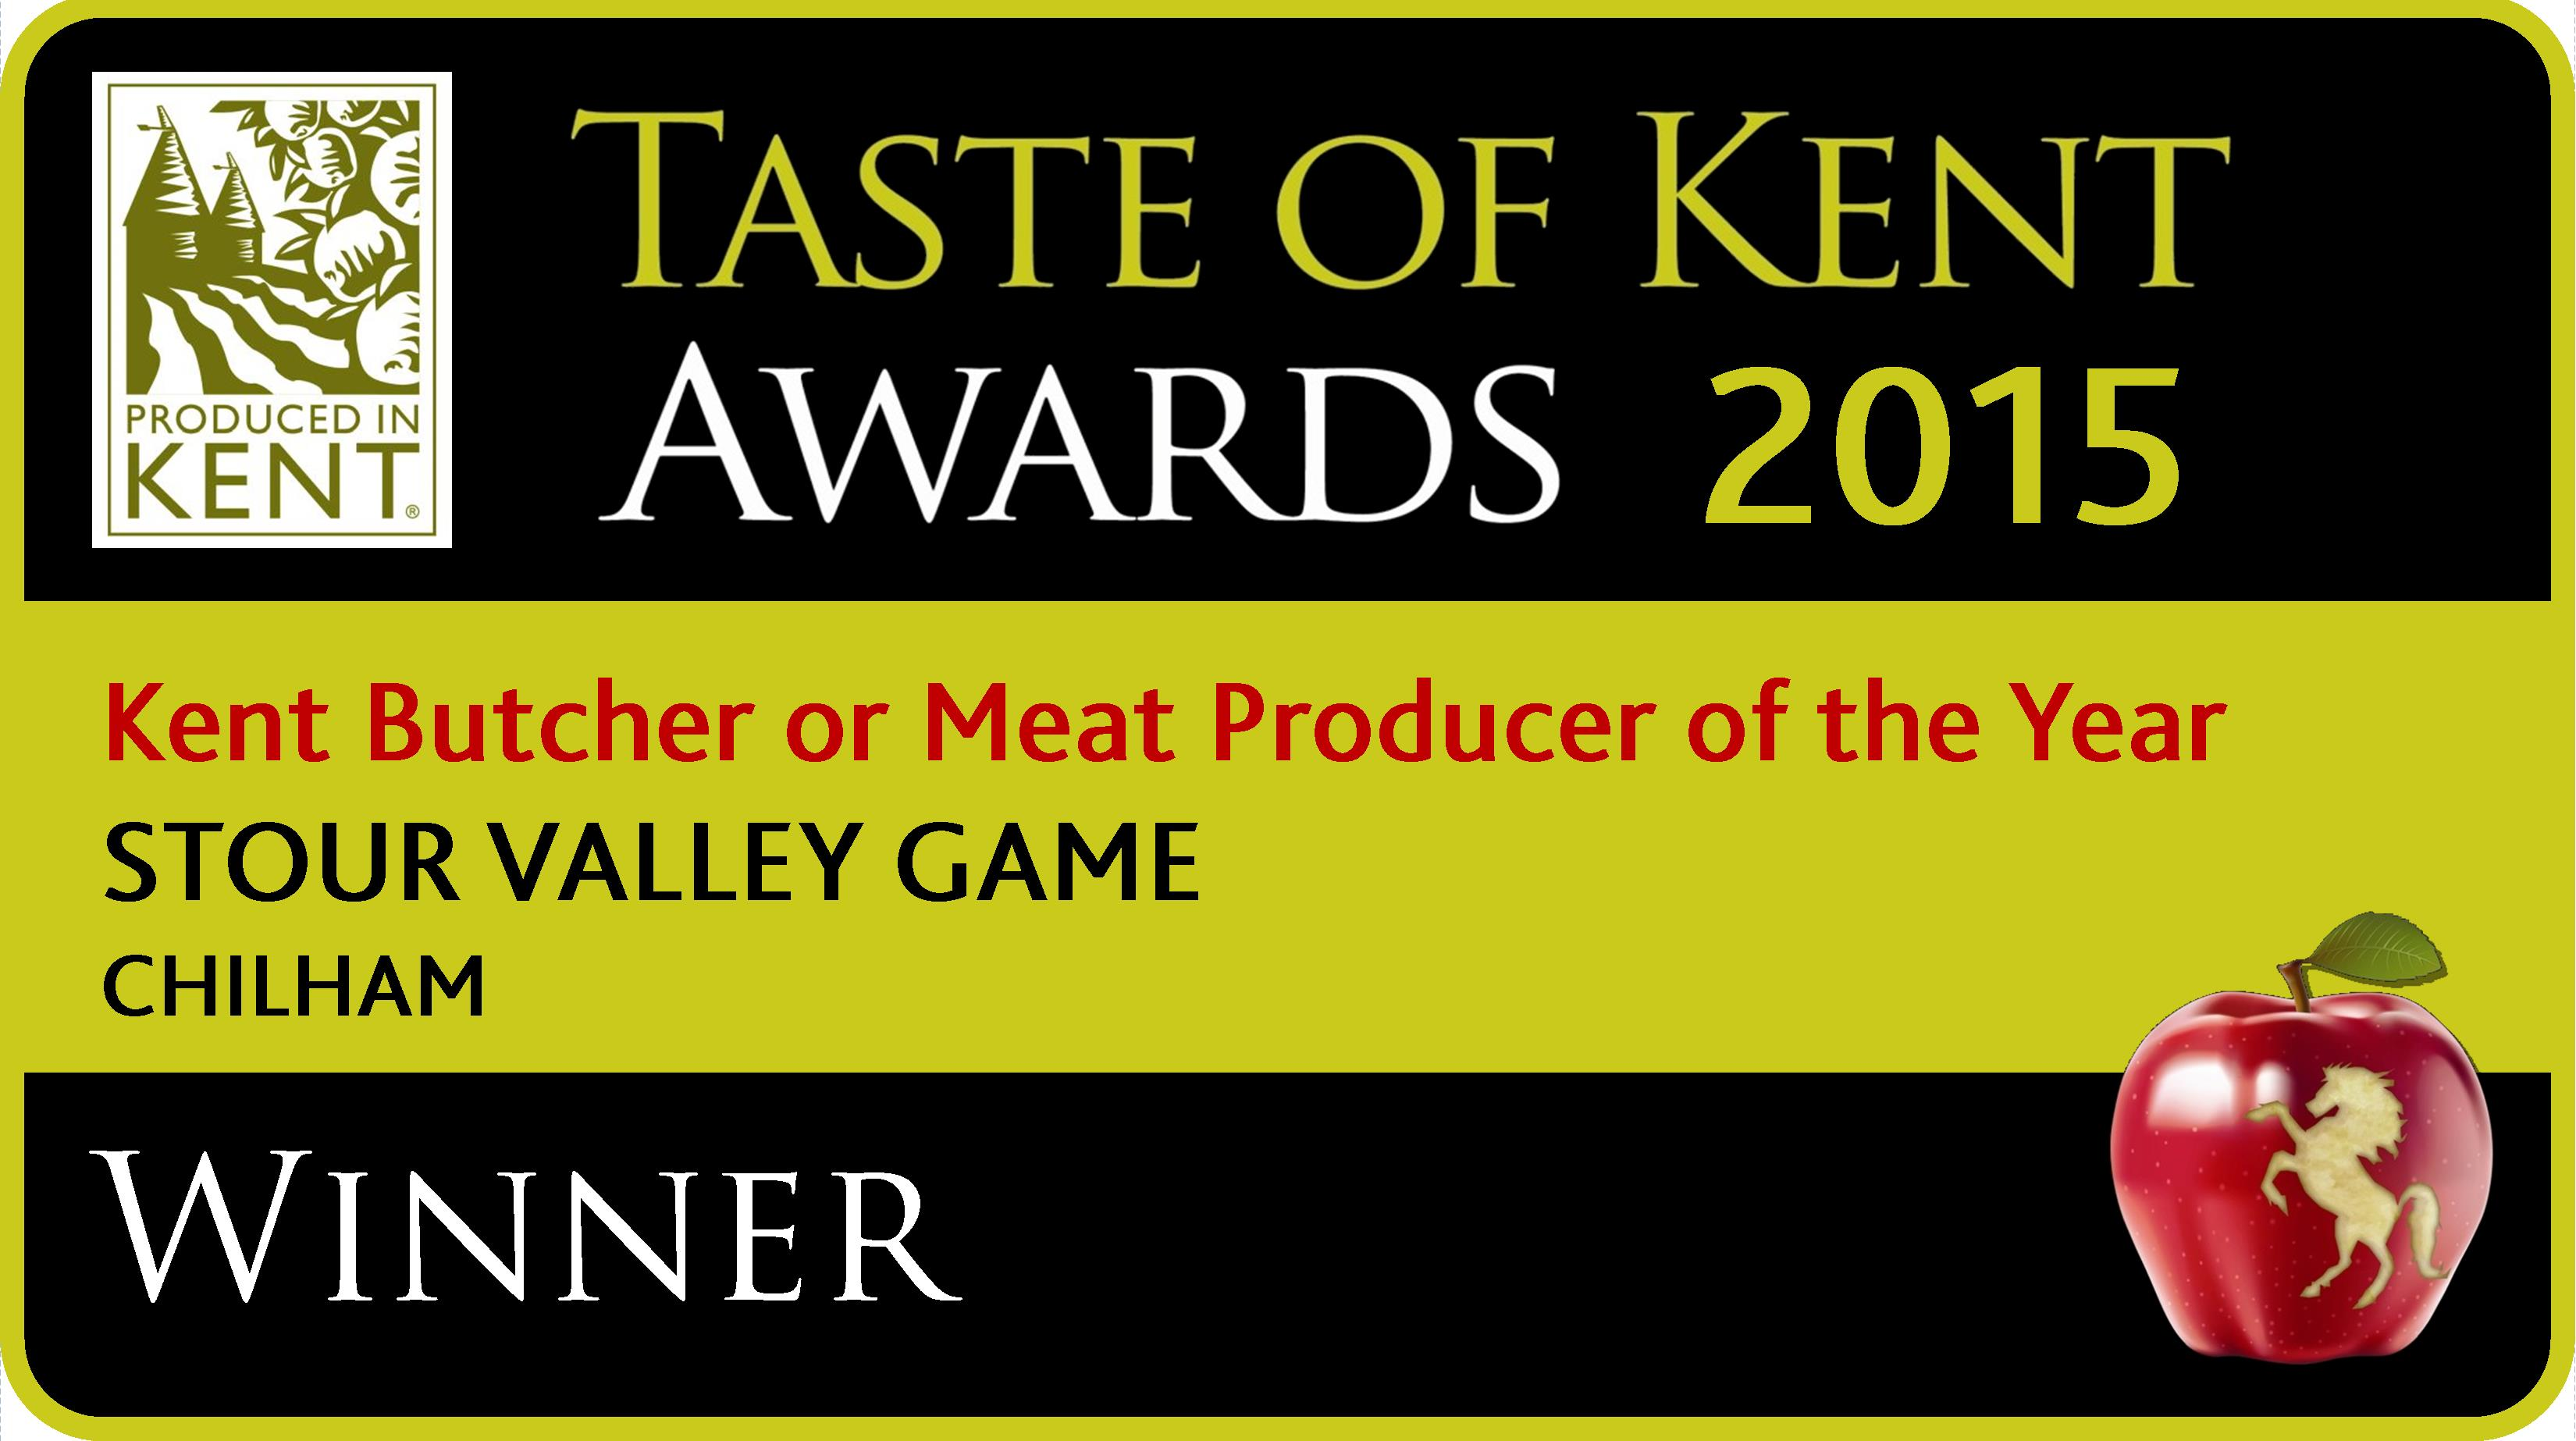 Stour Valley Game best in Kent